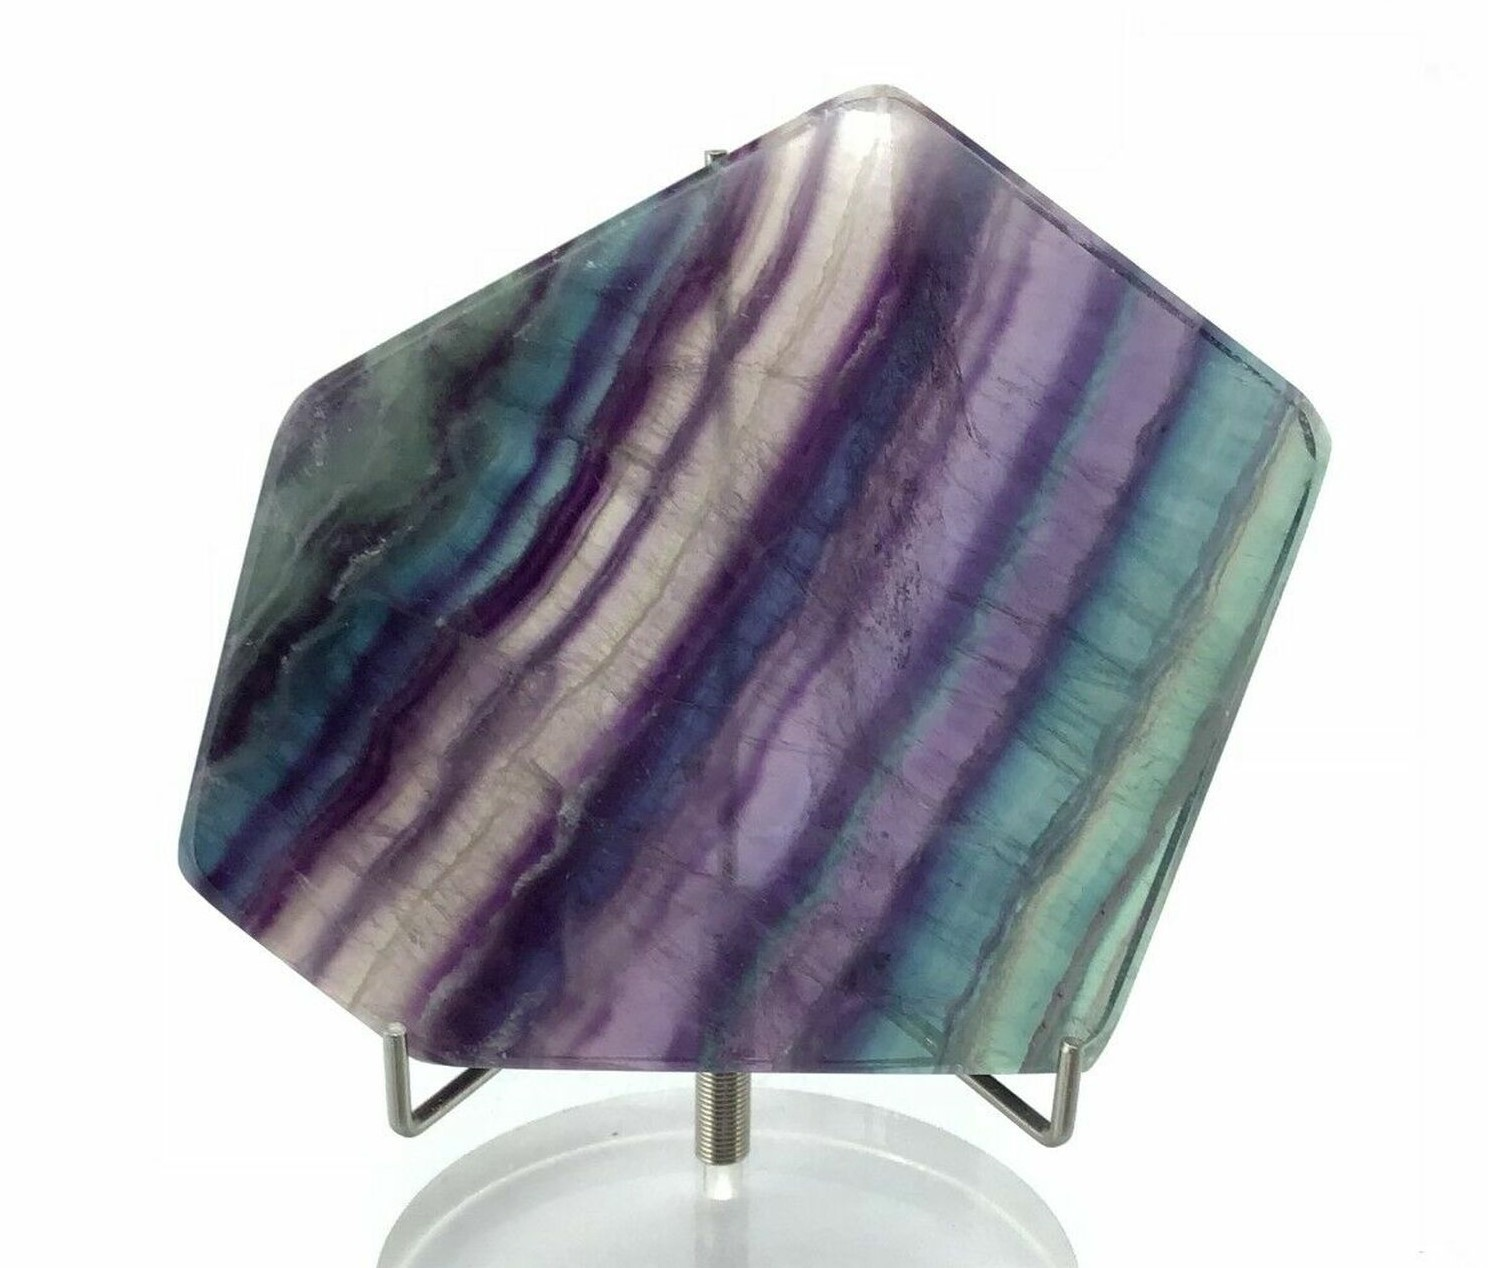 click to shop all fluorite